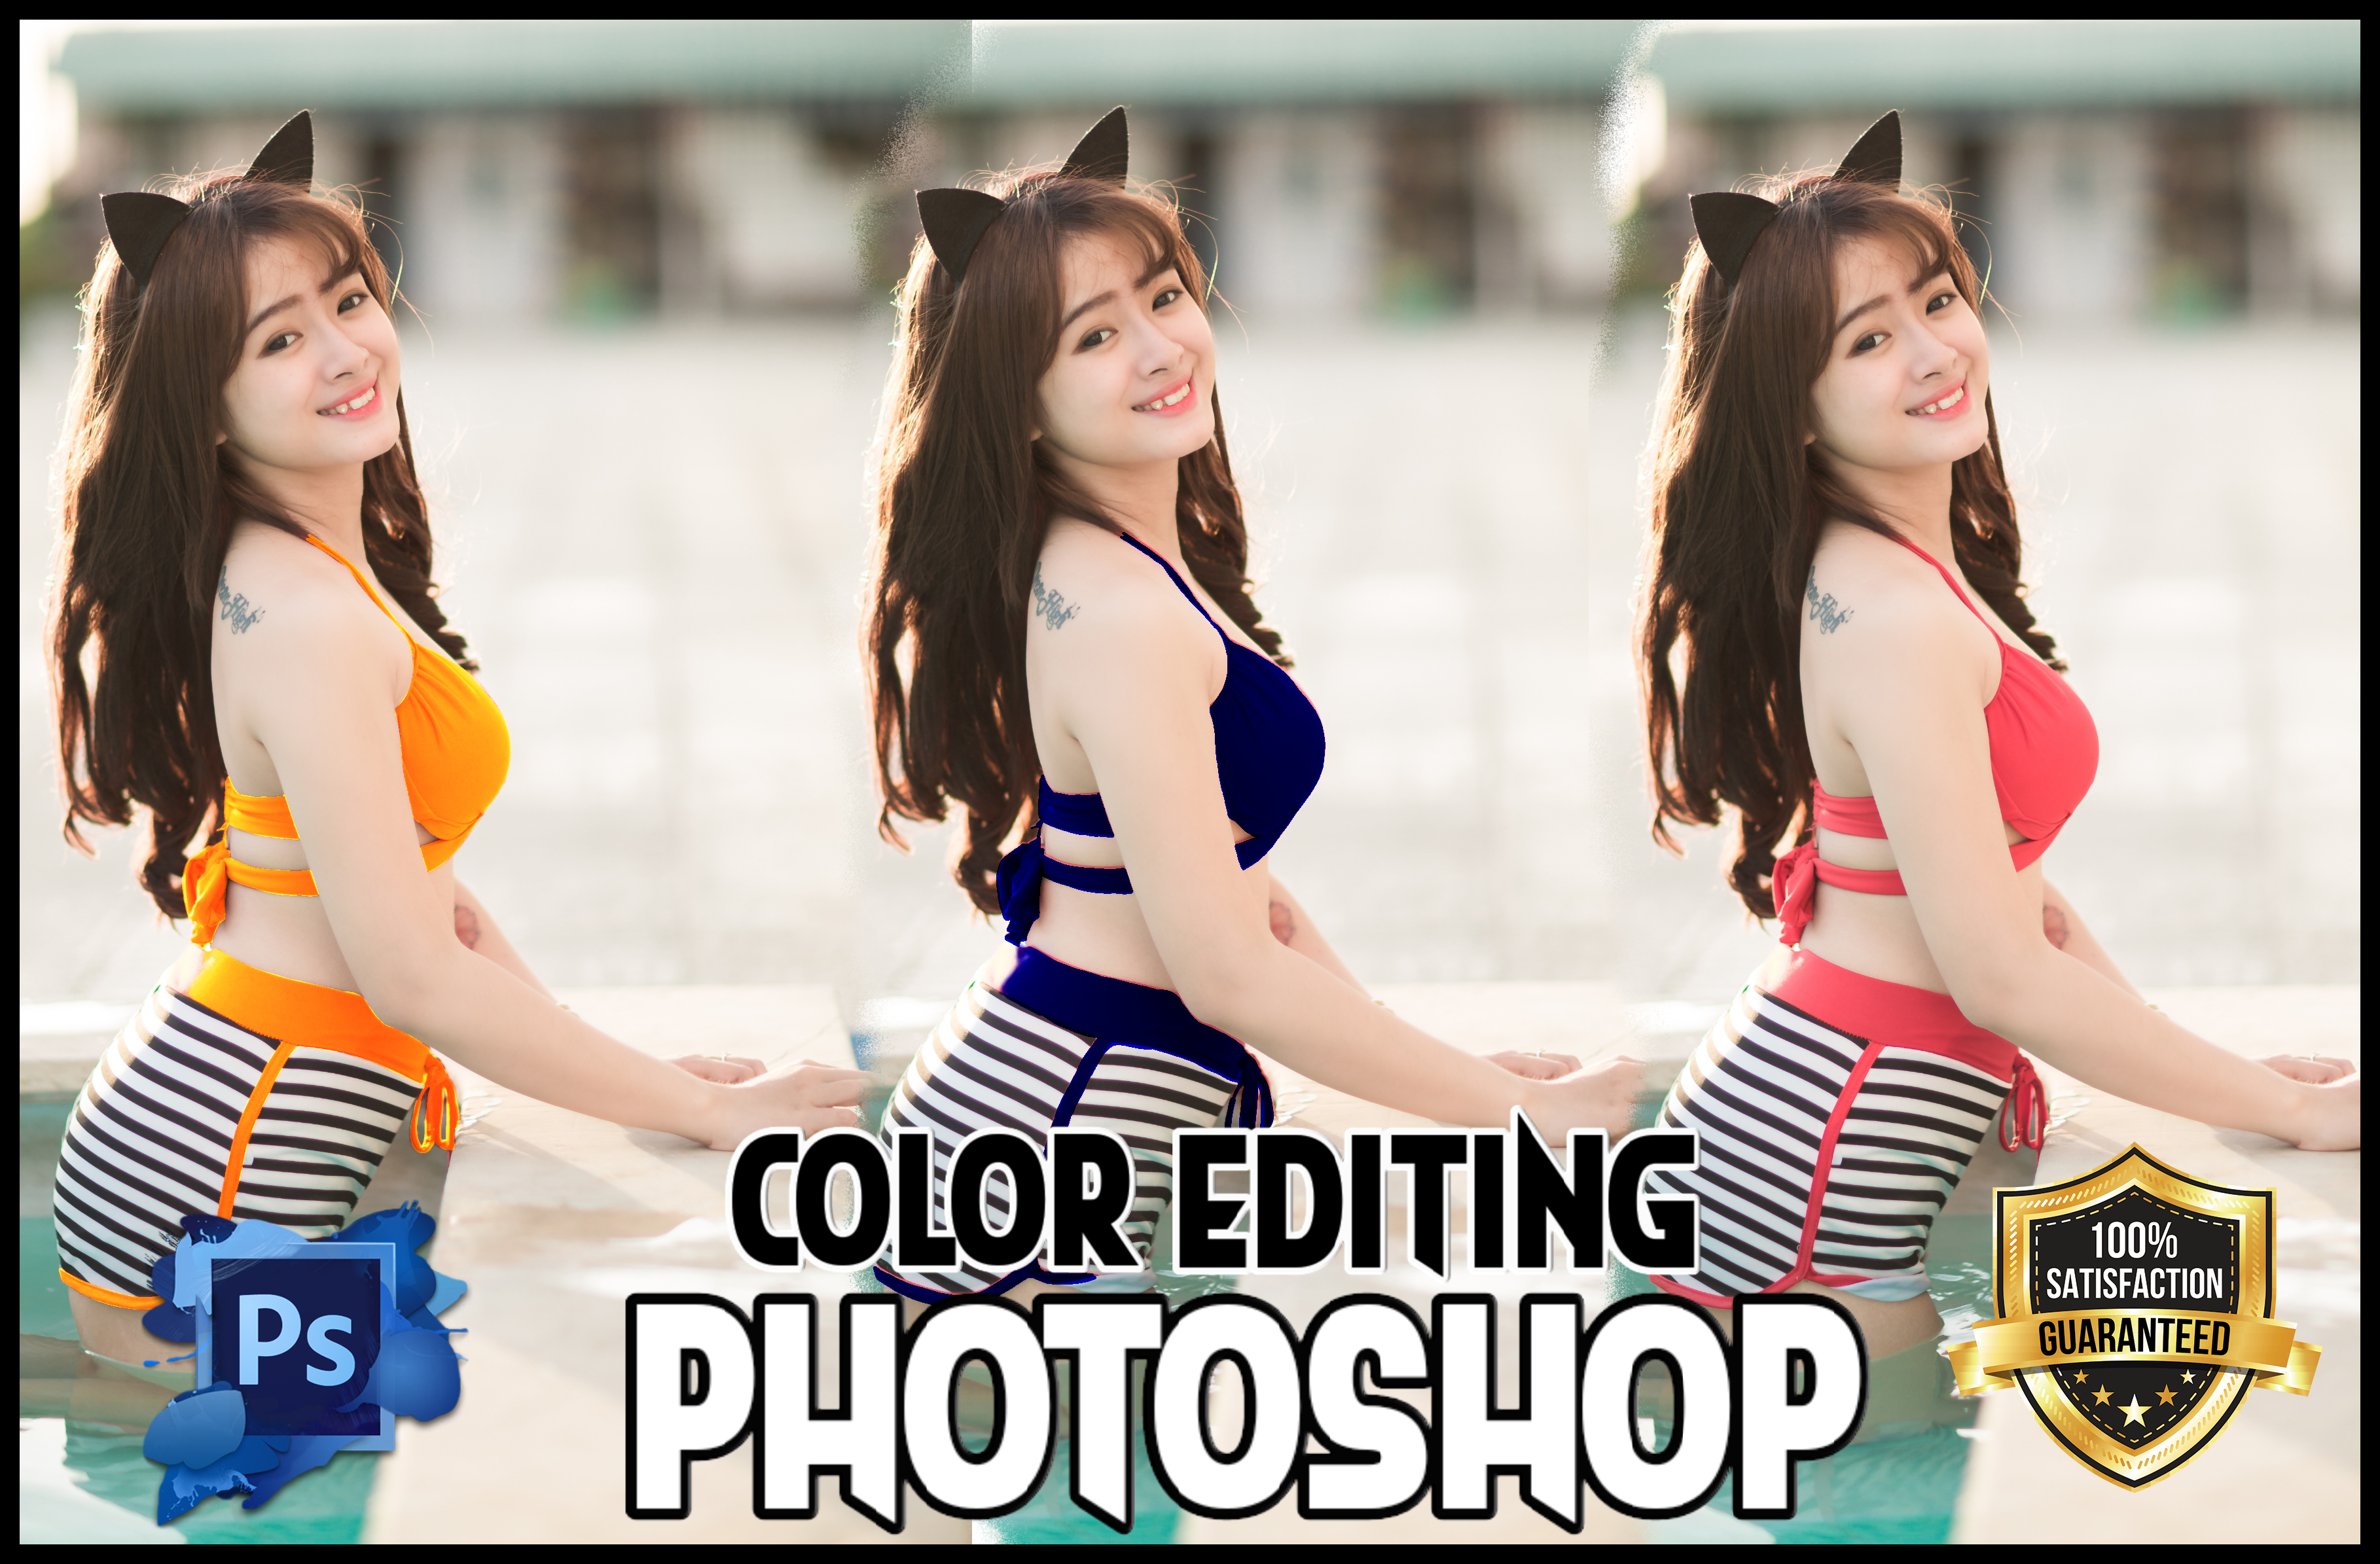 I will change any T-shirt/dress color within 24 hours